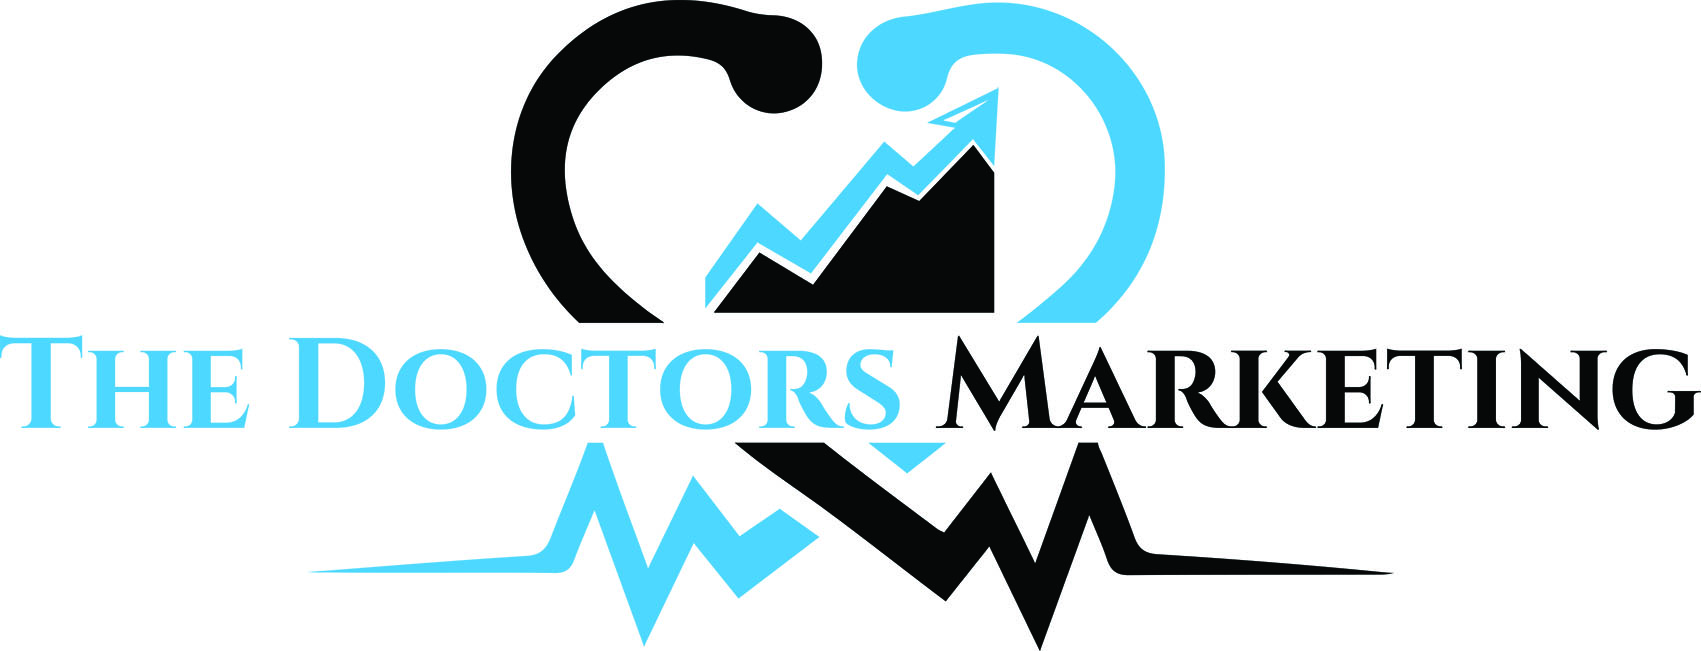 The Doctors Marketing